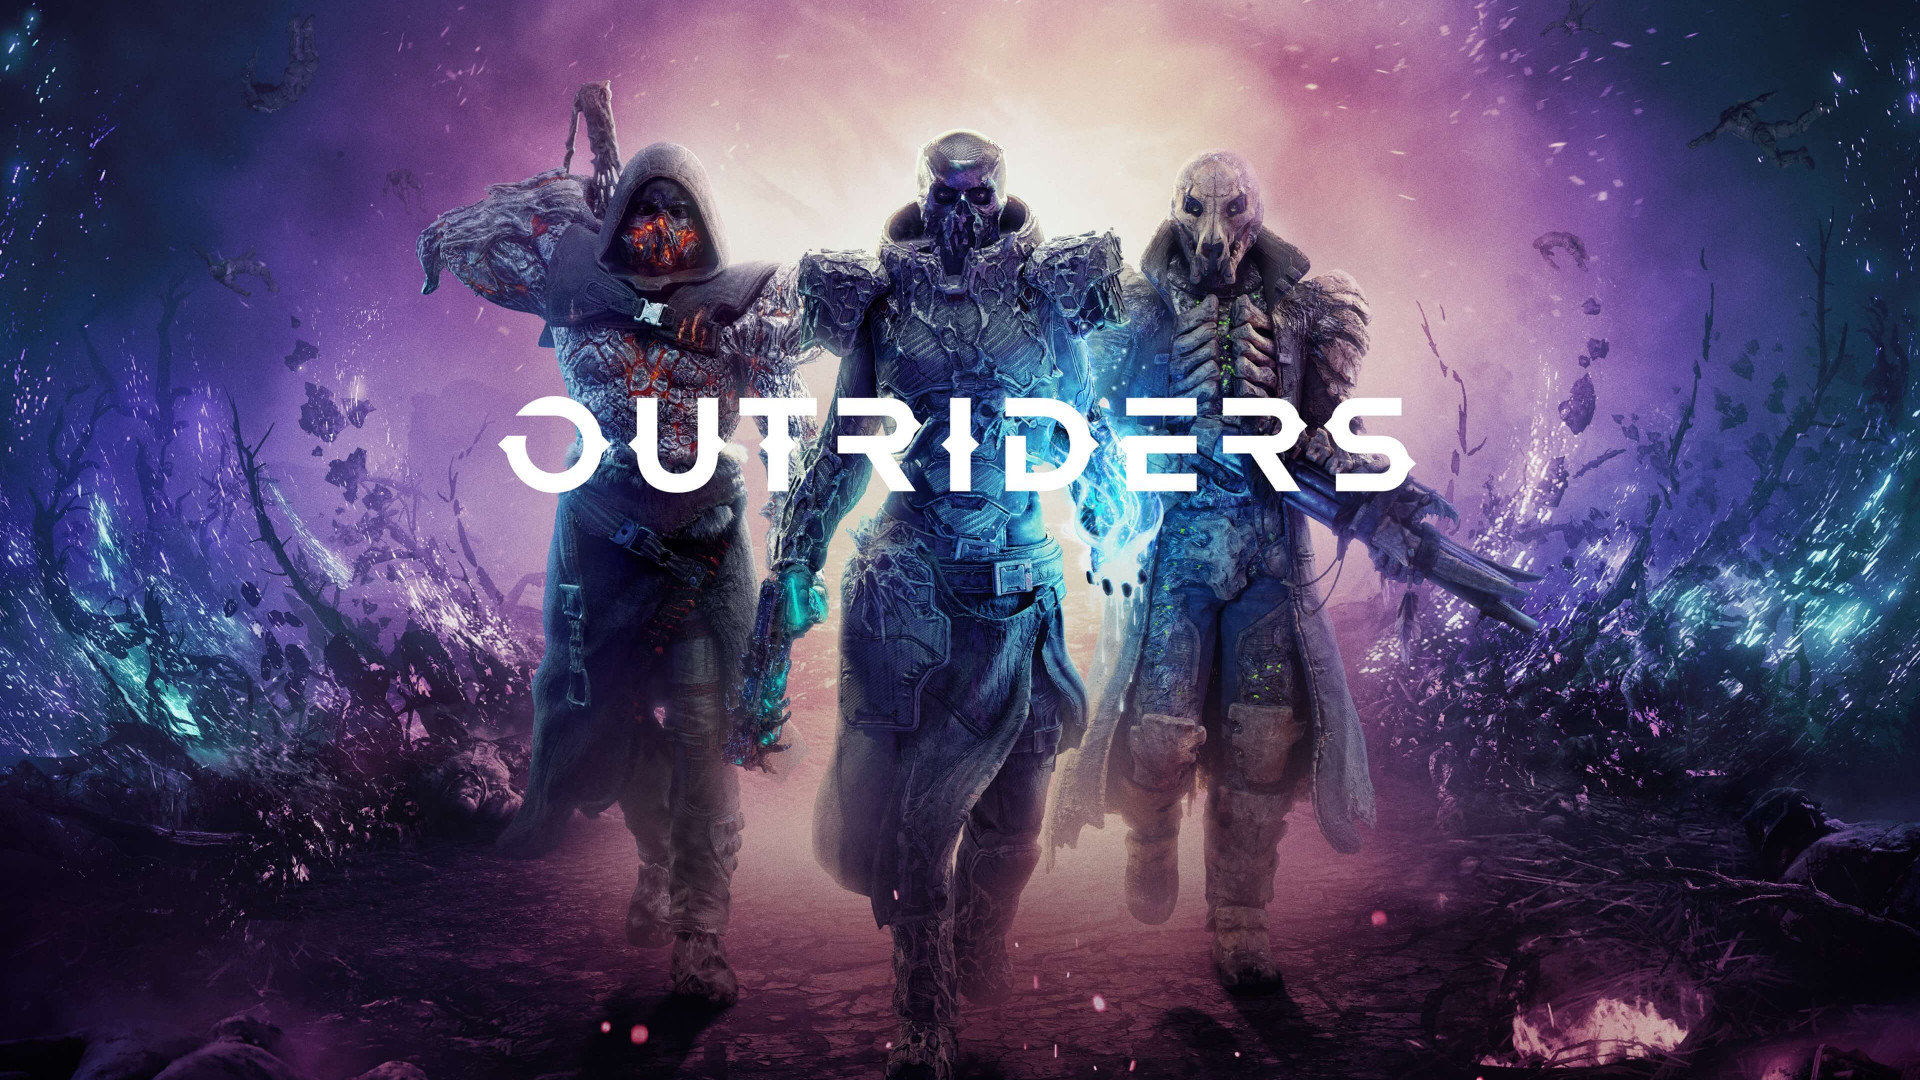 Outriders wallpaper 1920x1080